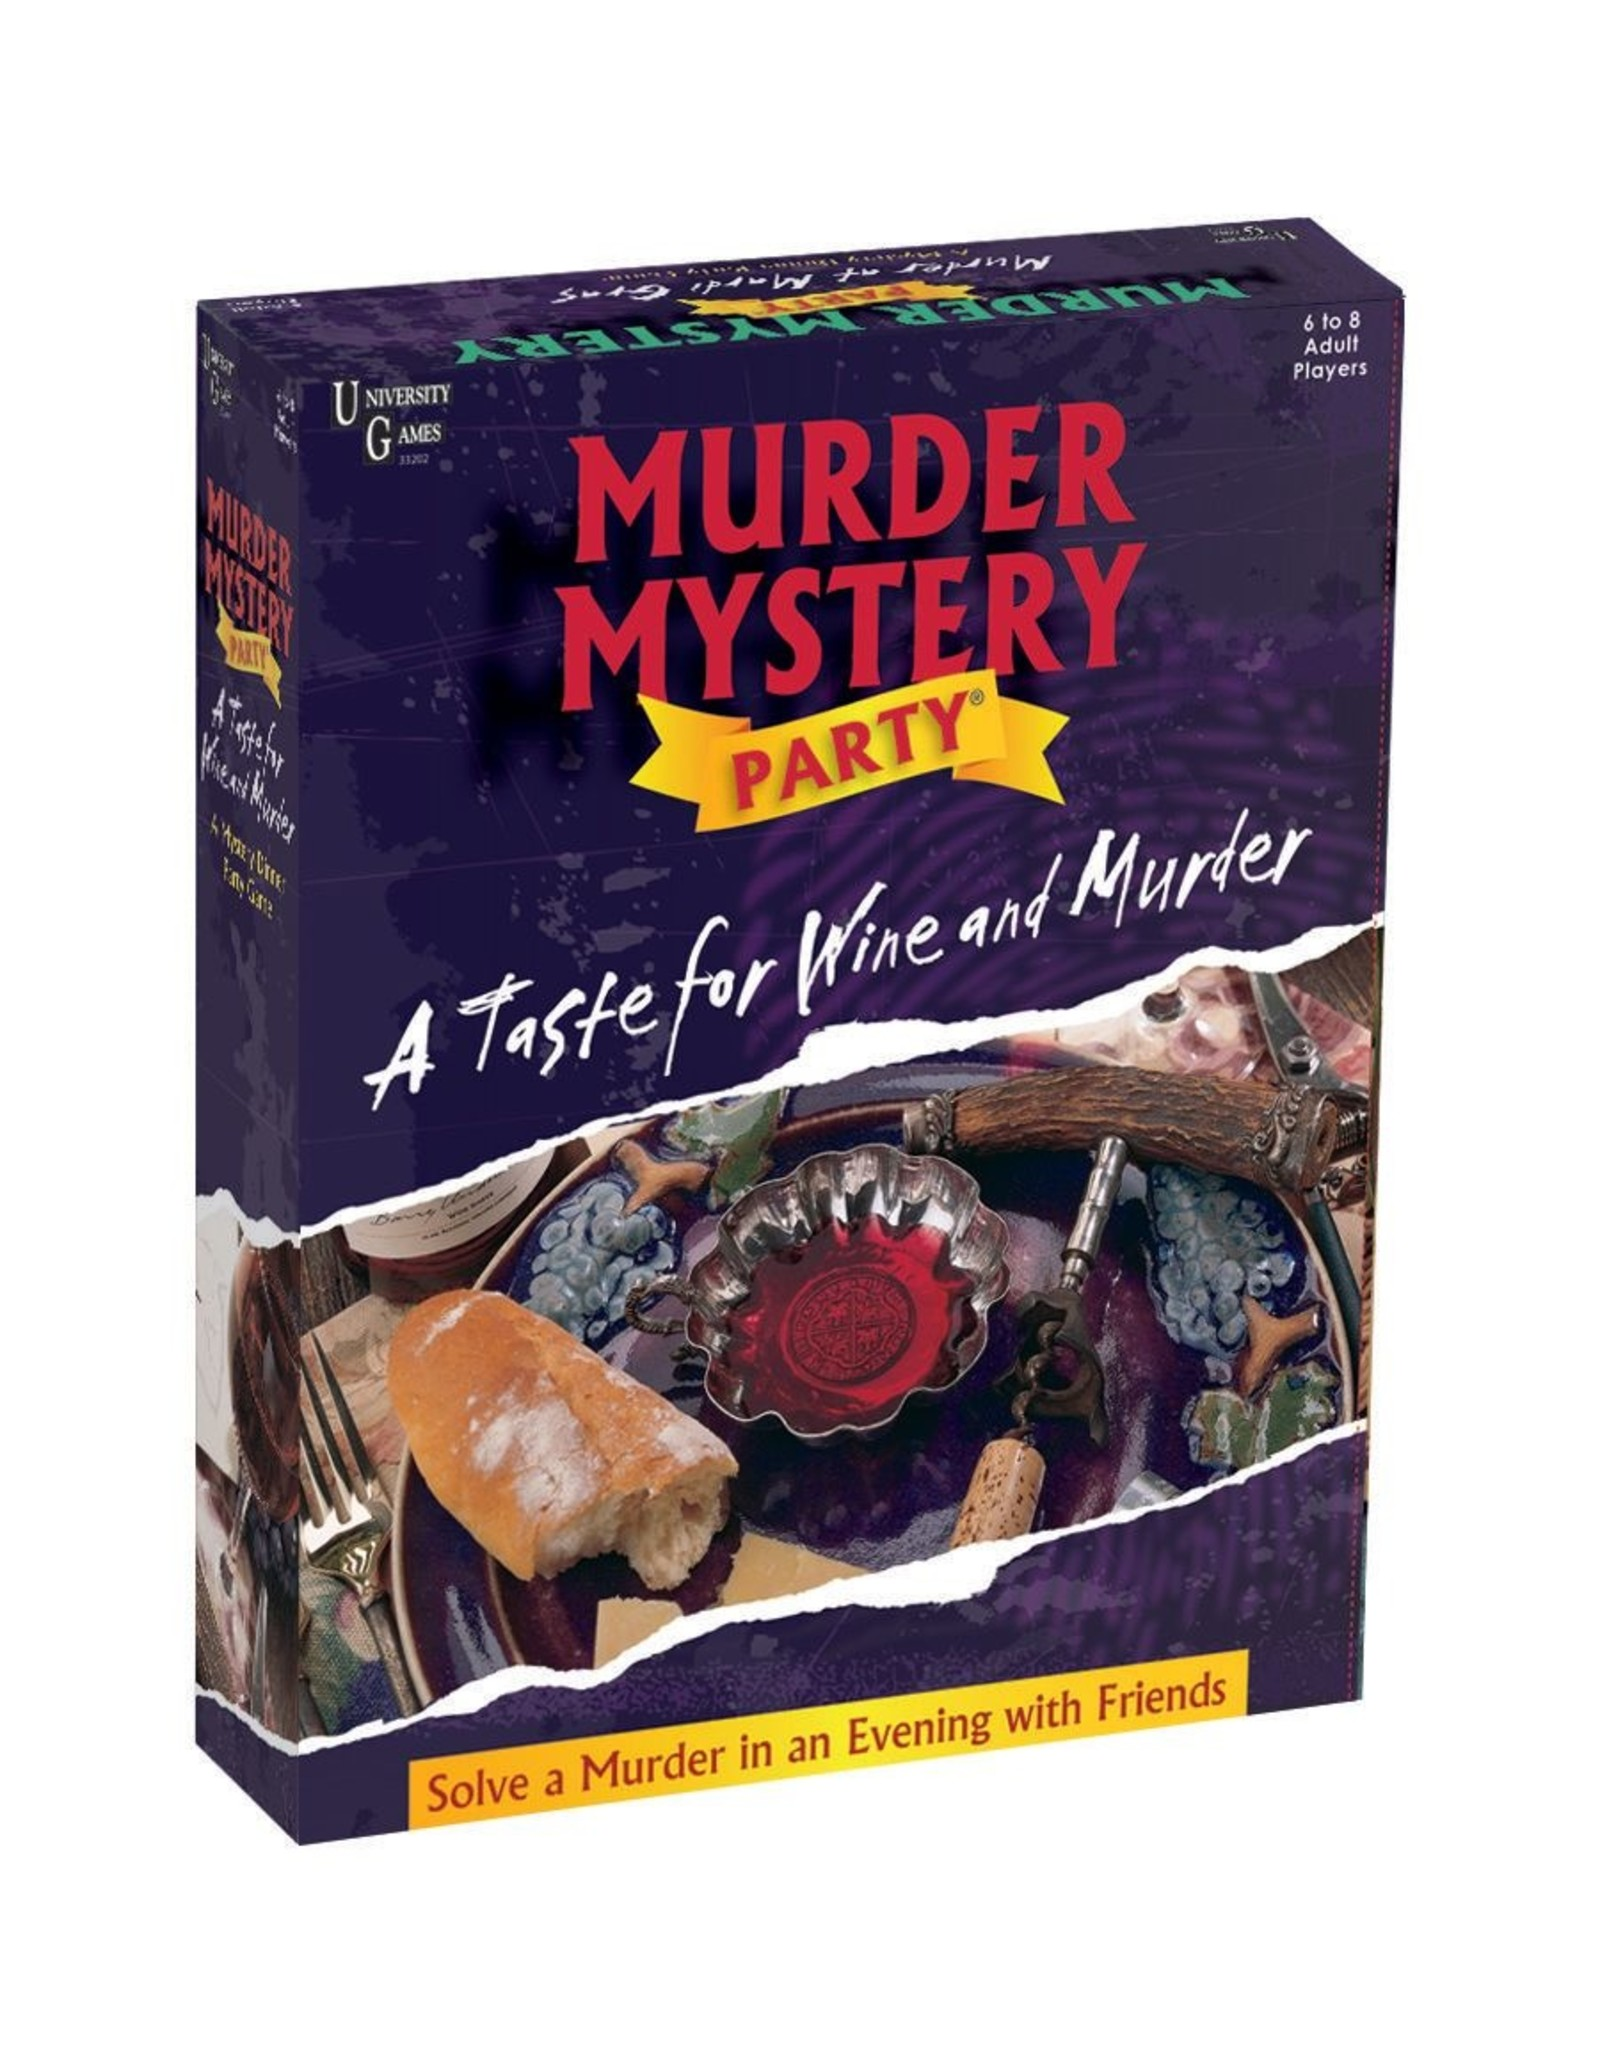 University Games Murder Mystery Party: A Taste for Wine and Murder